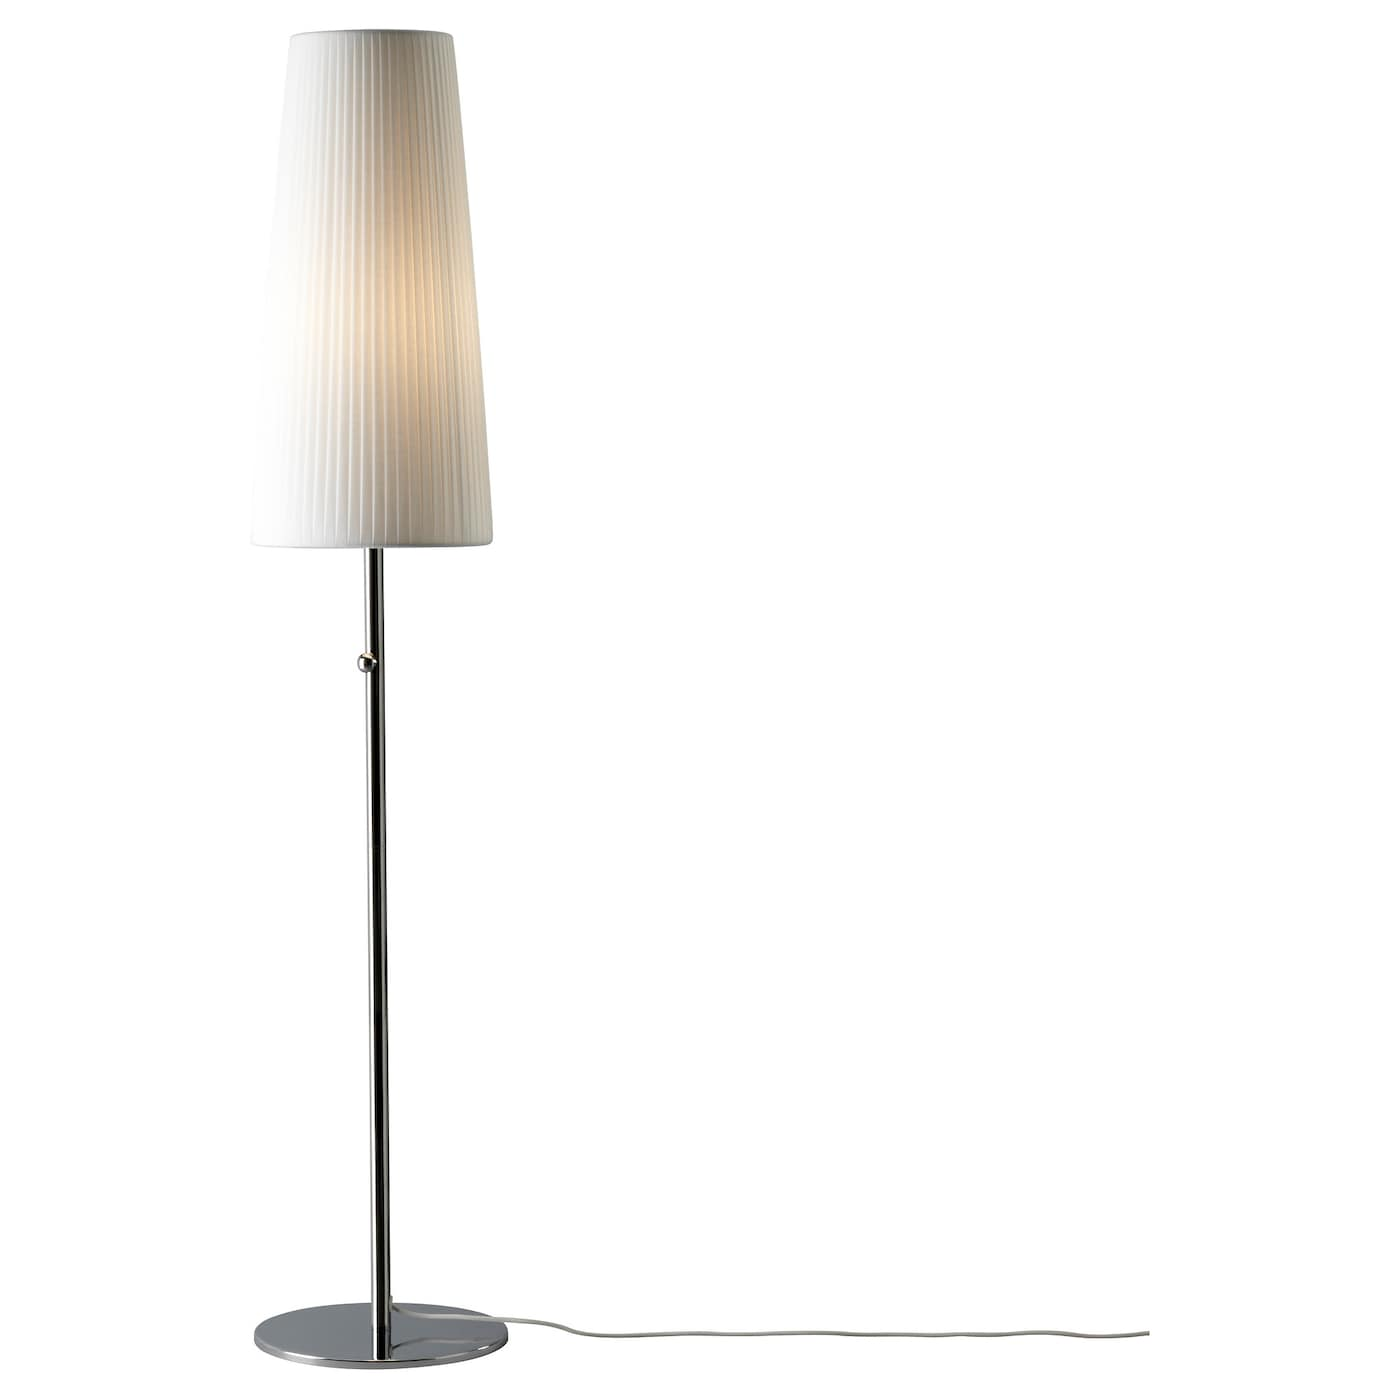 ikea floor lamps  shop online  instore - ikea ikea  lunta floor lamp diffused light that provides good generallight in the